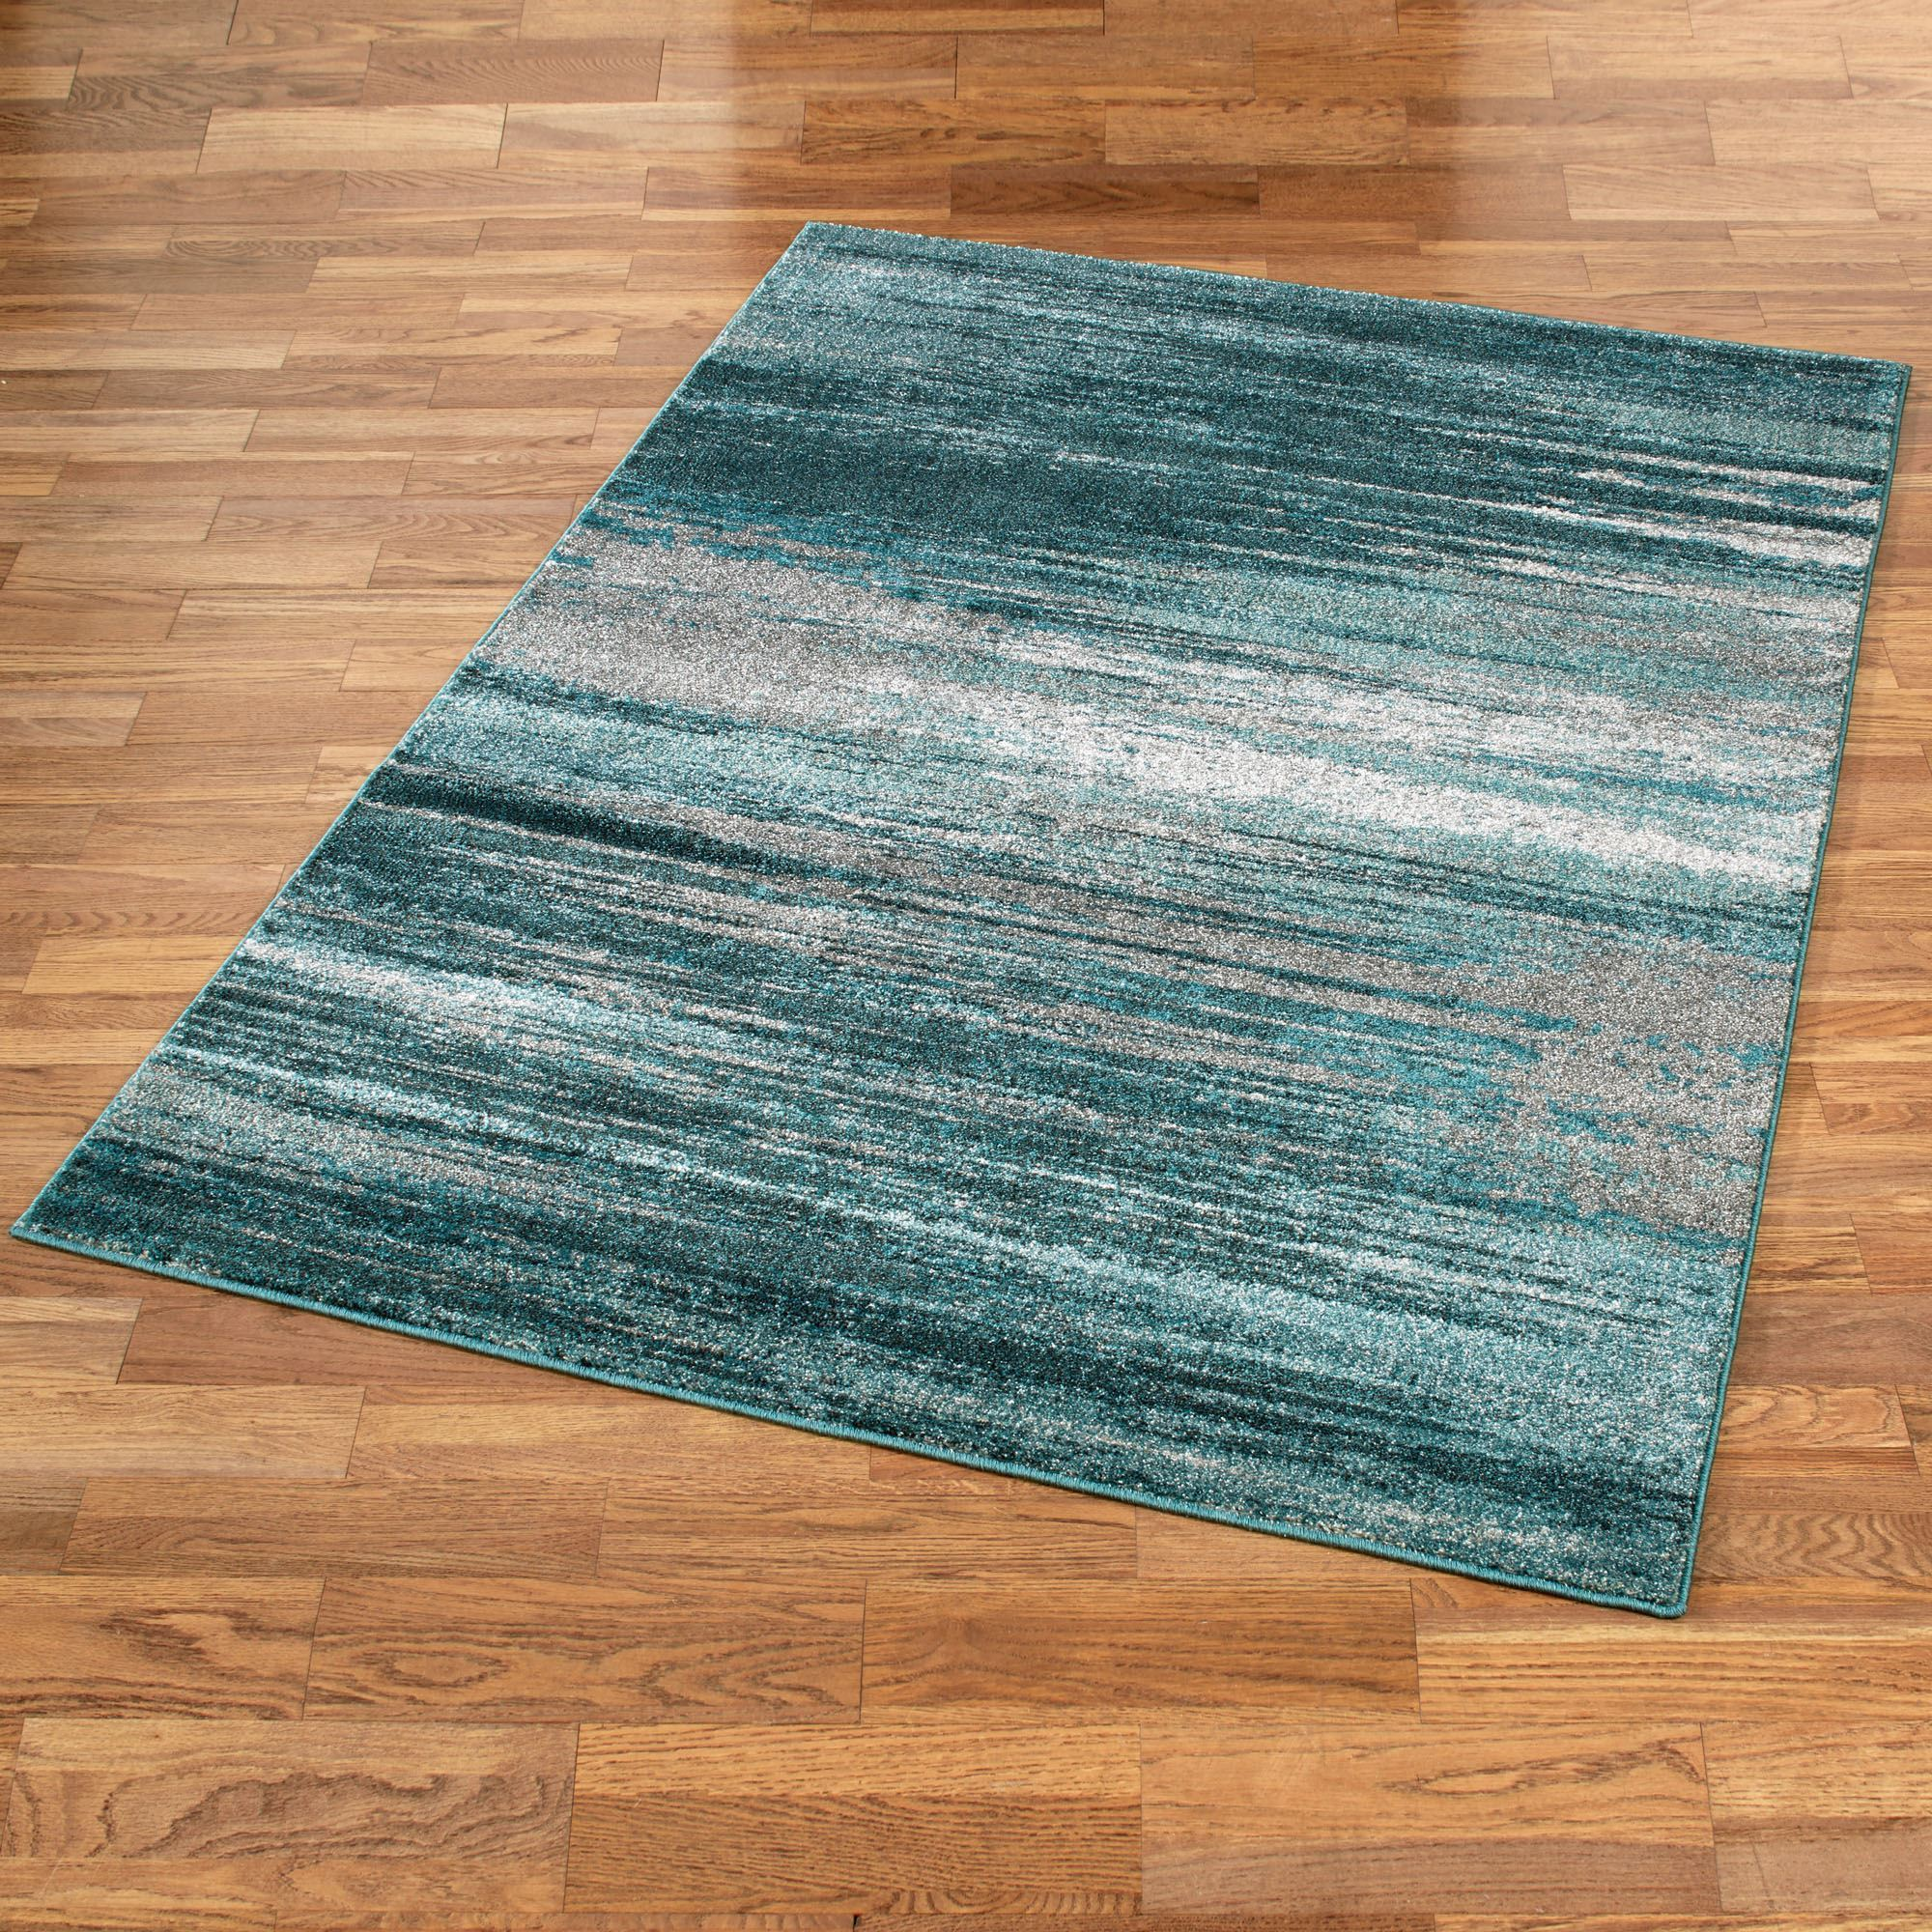 Teal Rugs Stormy Skies Rectangle Rug Wgopmxy